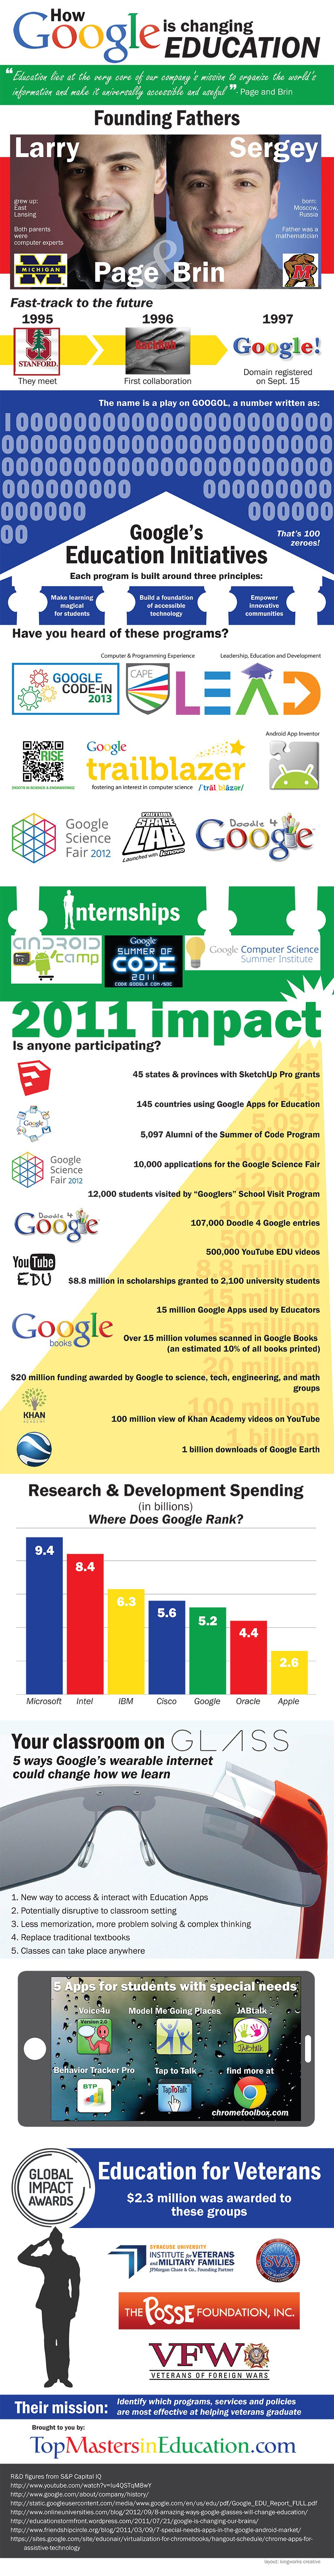 Google and Education